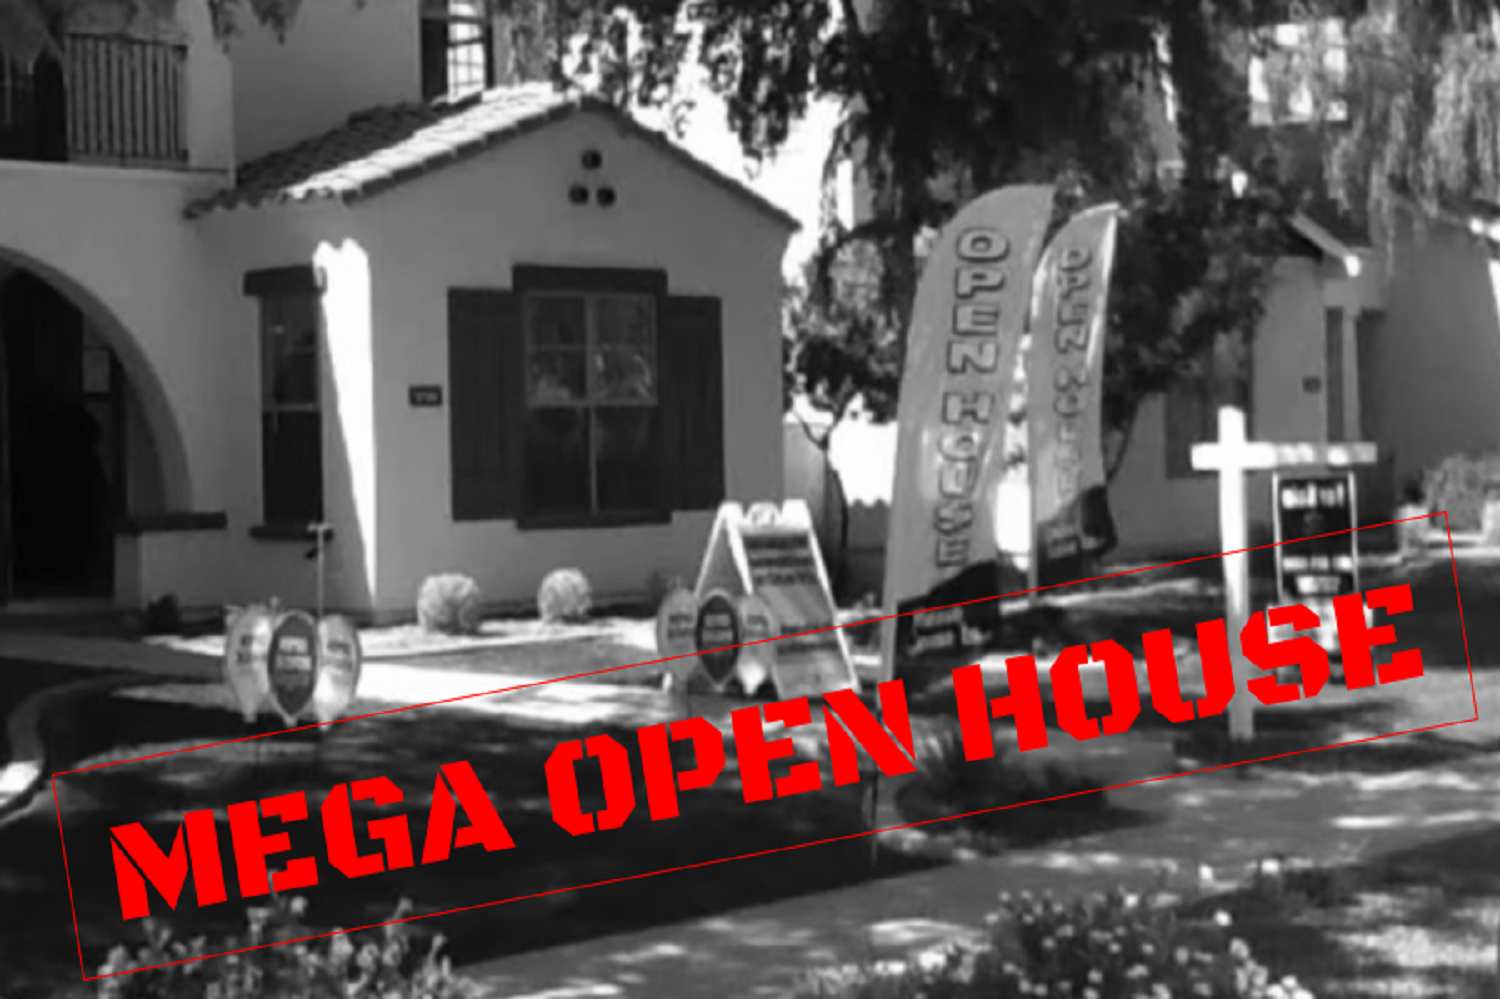 Mega Open House